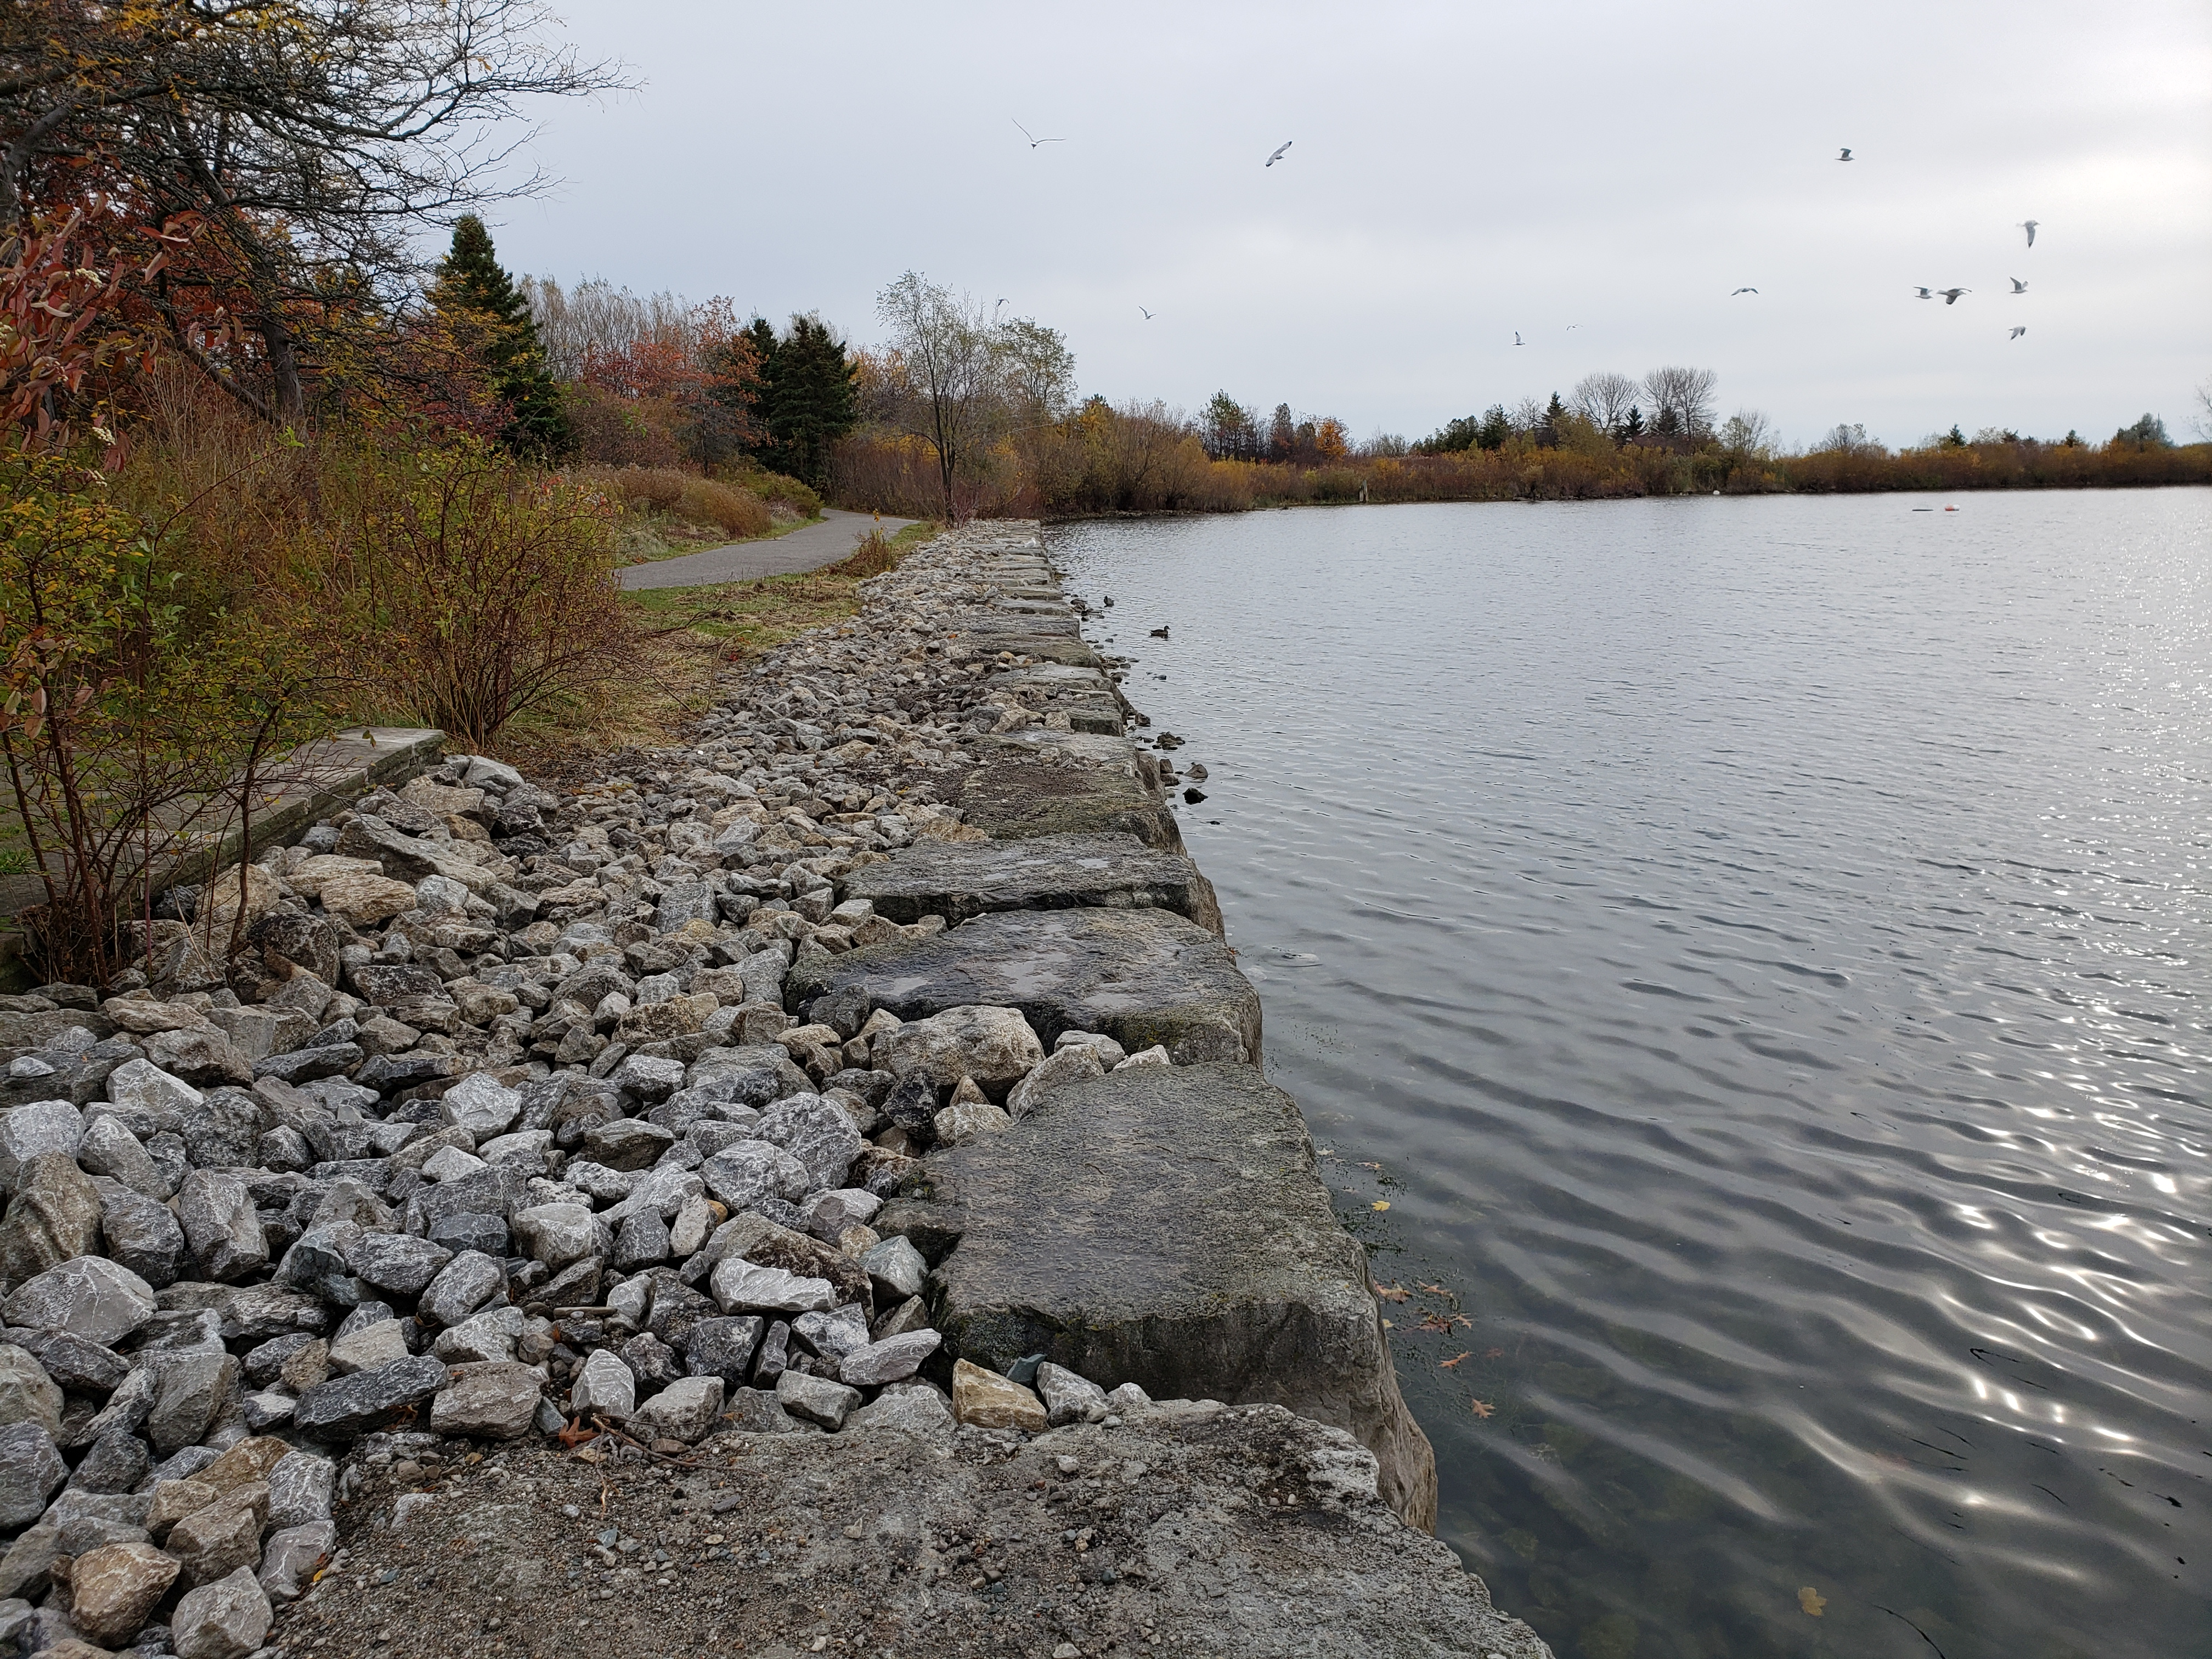 Completed eastern portion of the seawall and resurfaced trail. Source: TRCA, 2019.